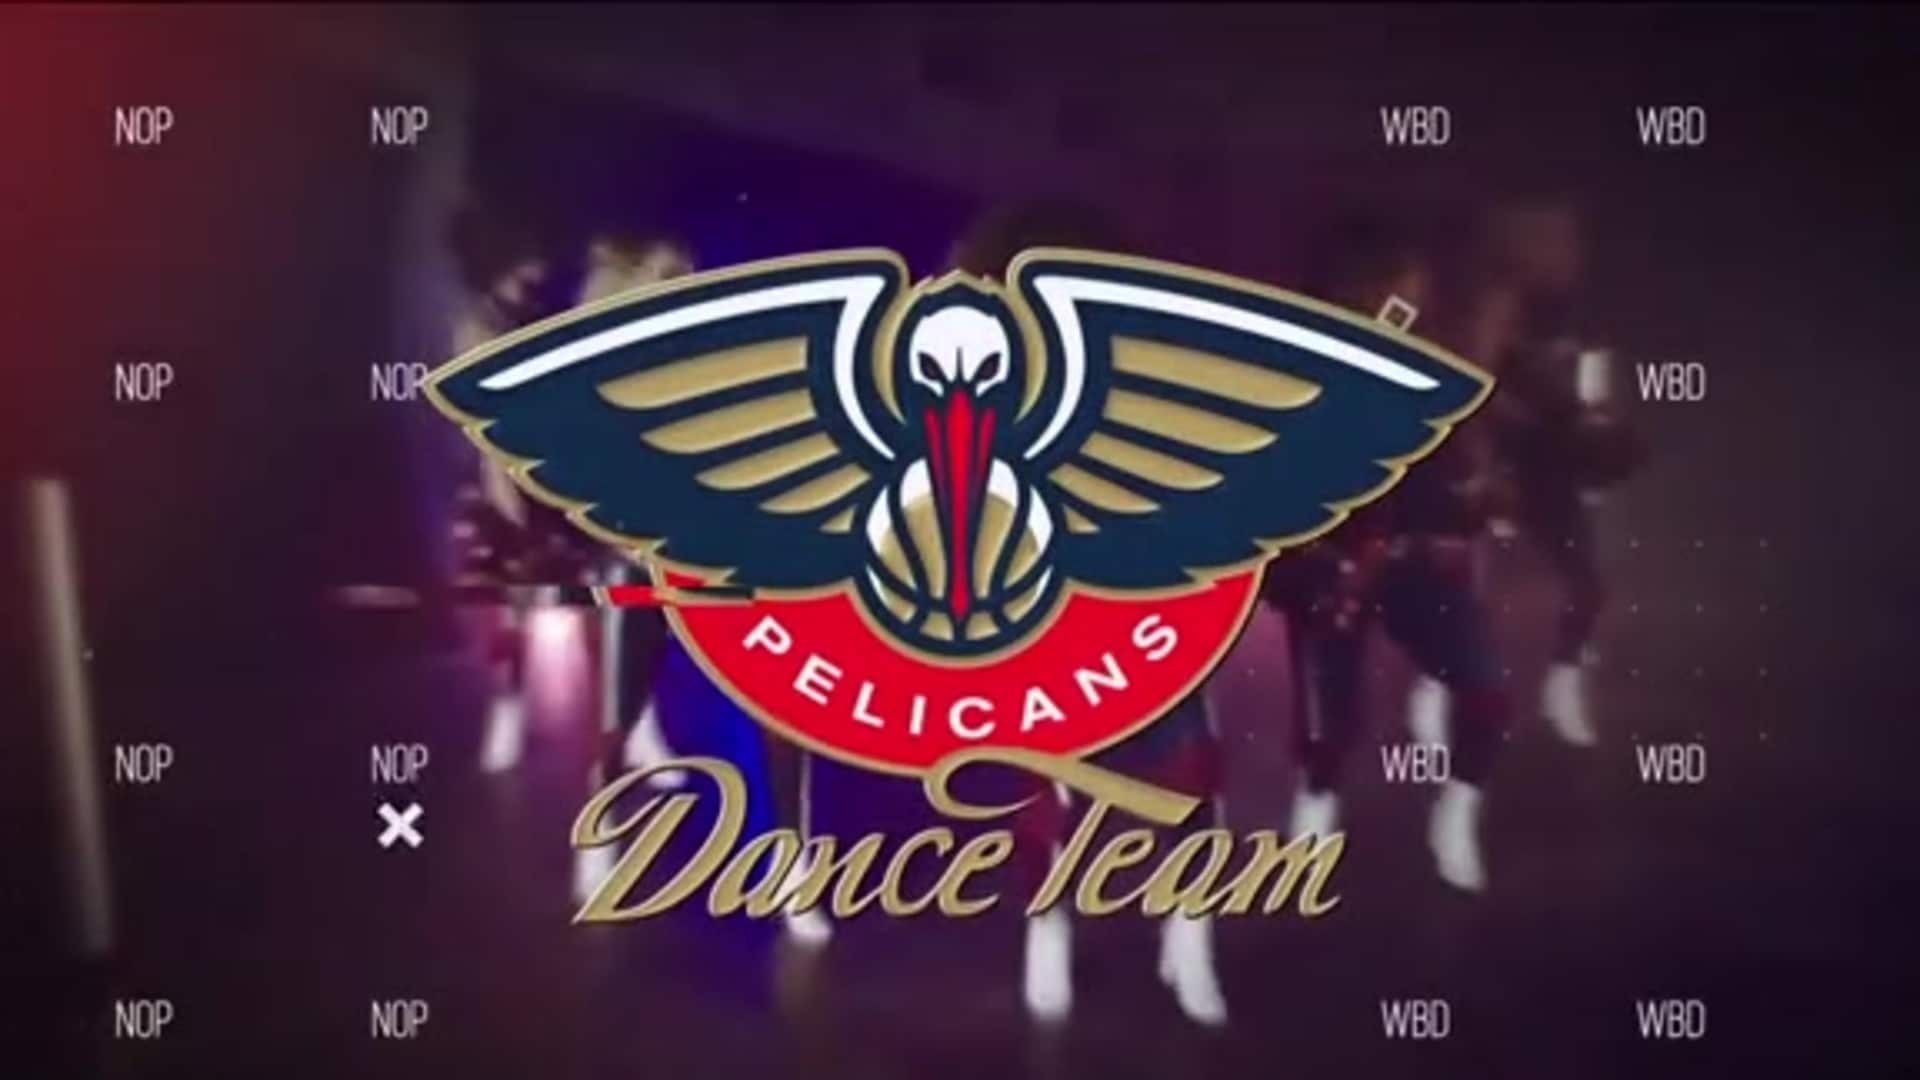 Entertainment: Pelicans Dance Team 3rd quarter performance - December 29 vs. Houston Rockets